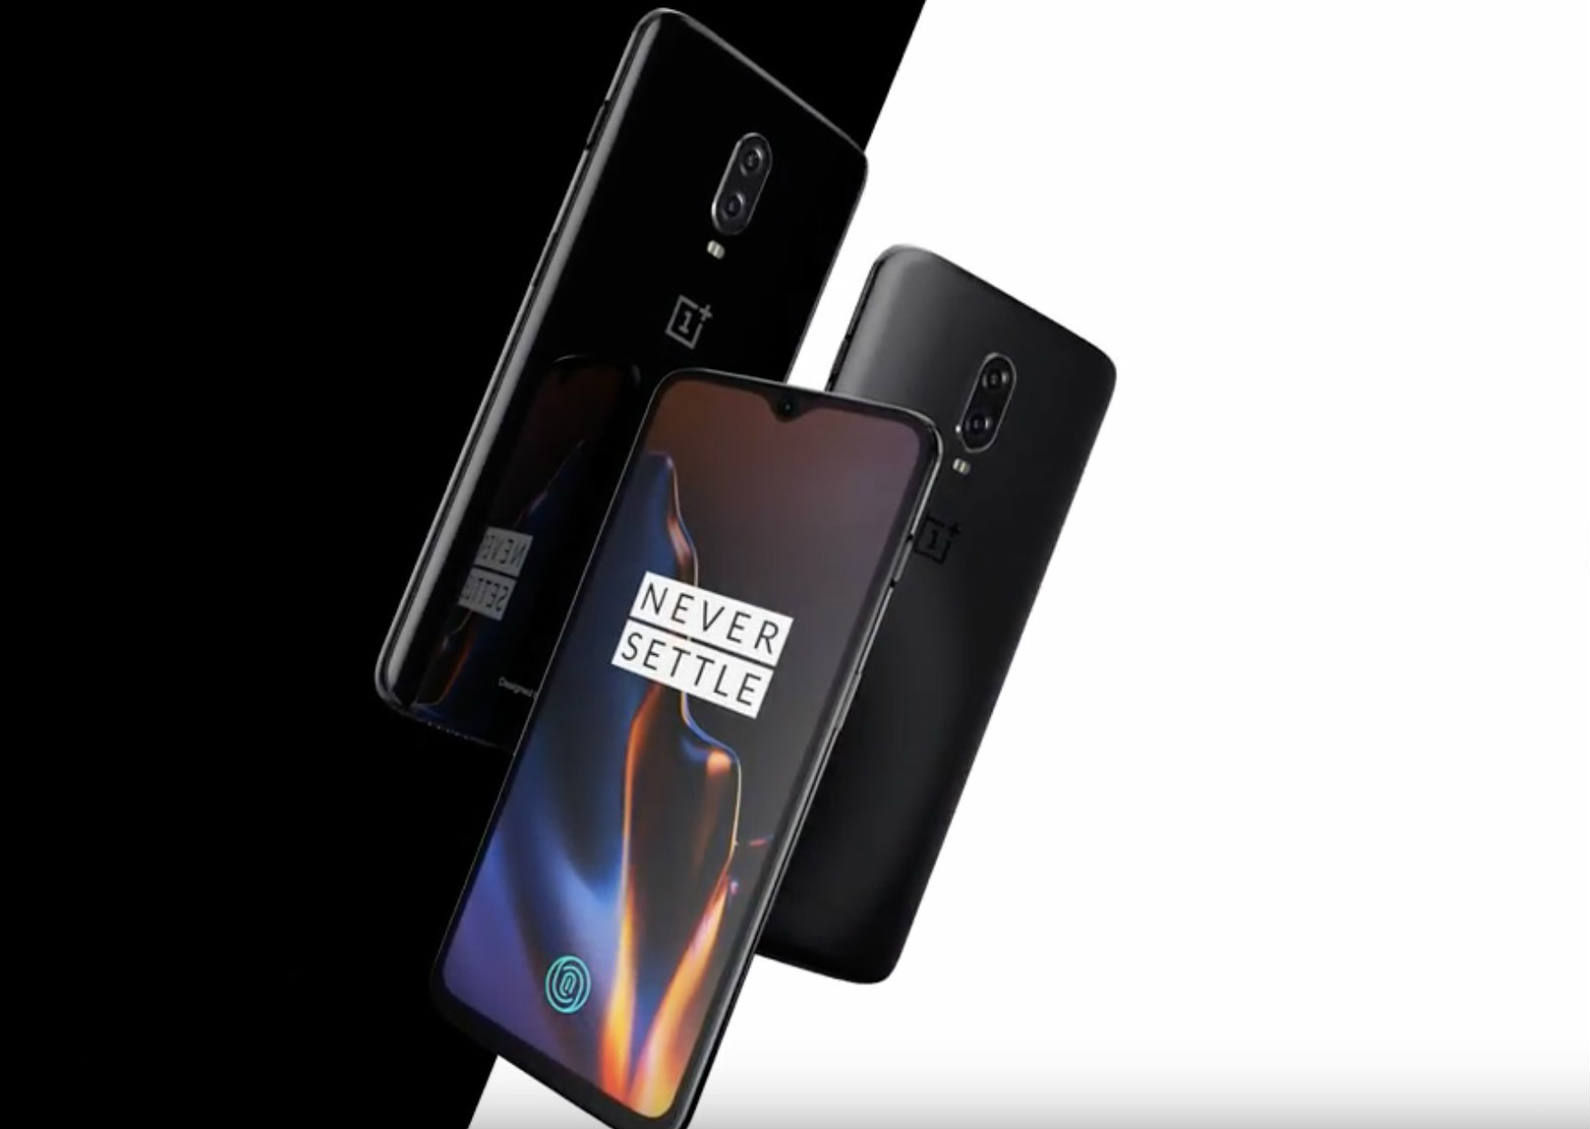 oneplus-6t-launched-price-specifications-and-features-in-hindi